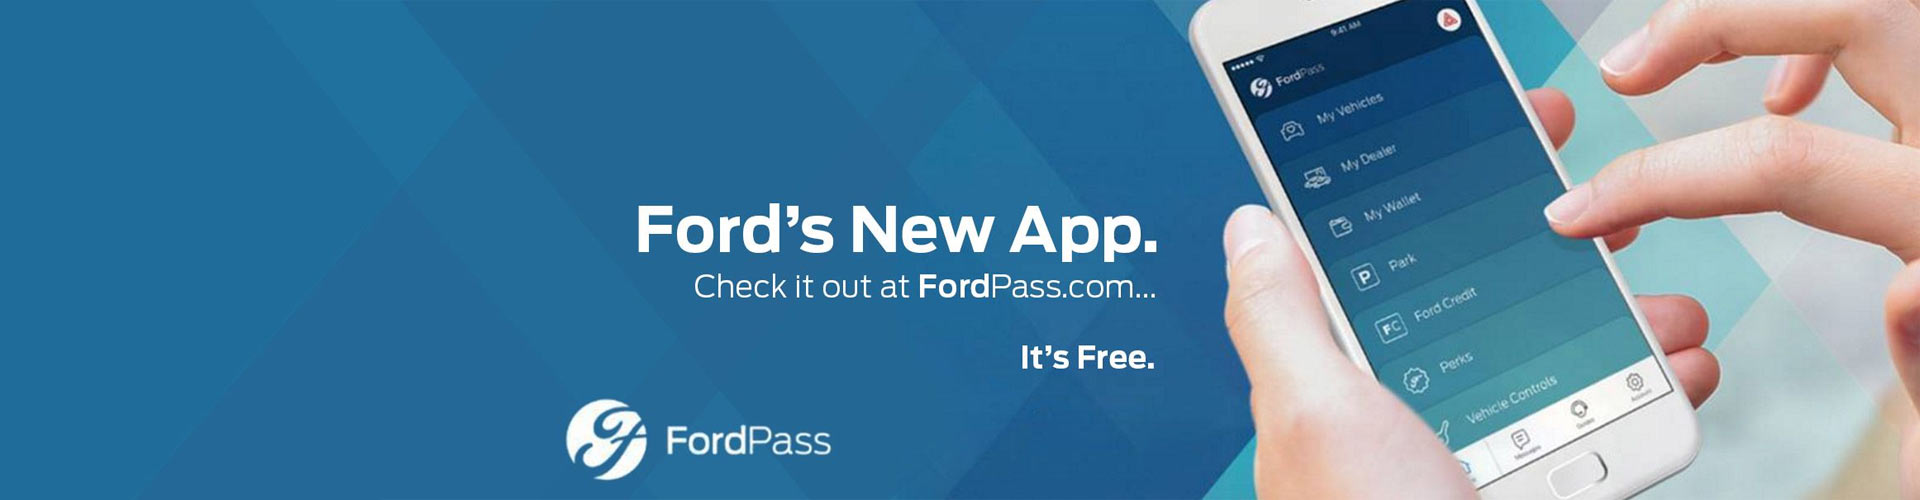 marquee-full-width-FordPass